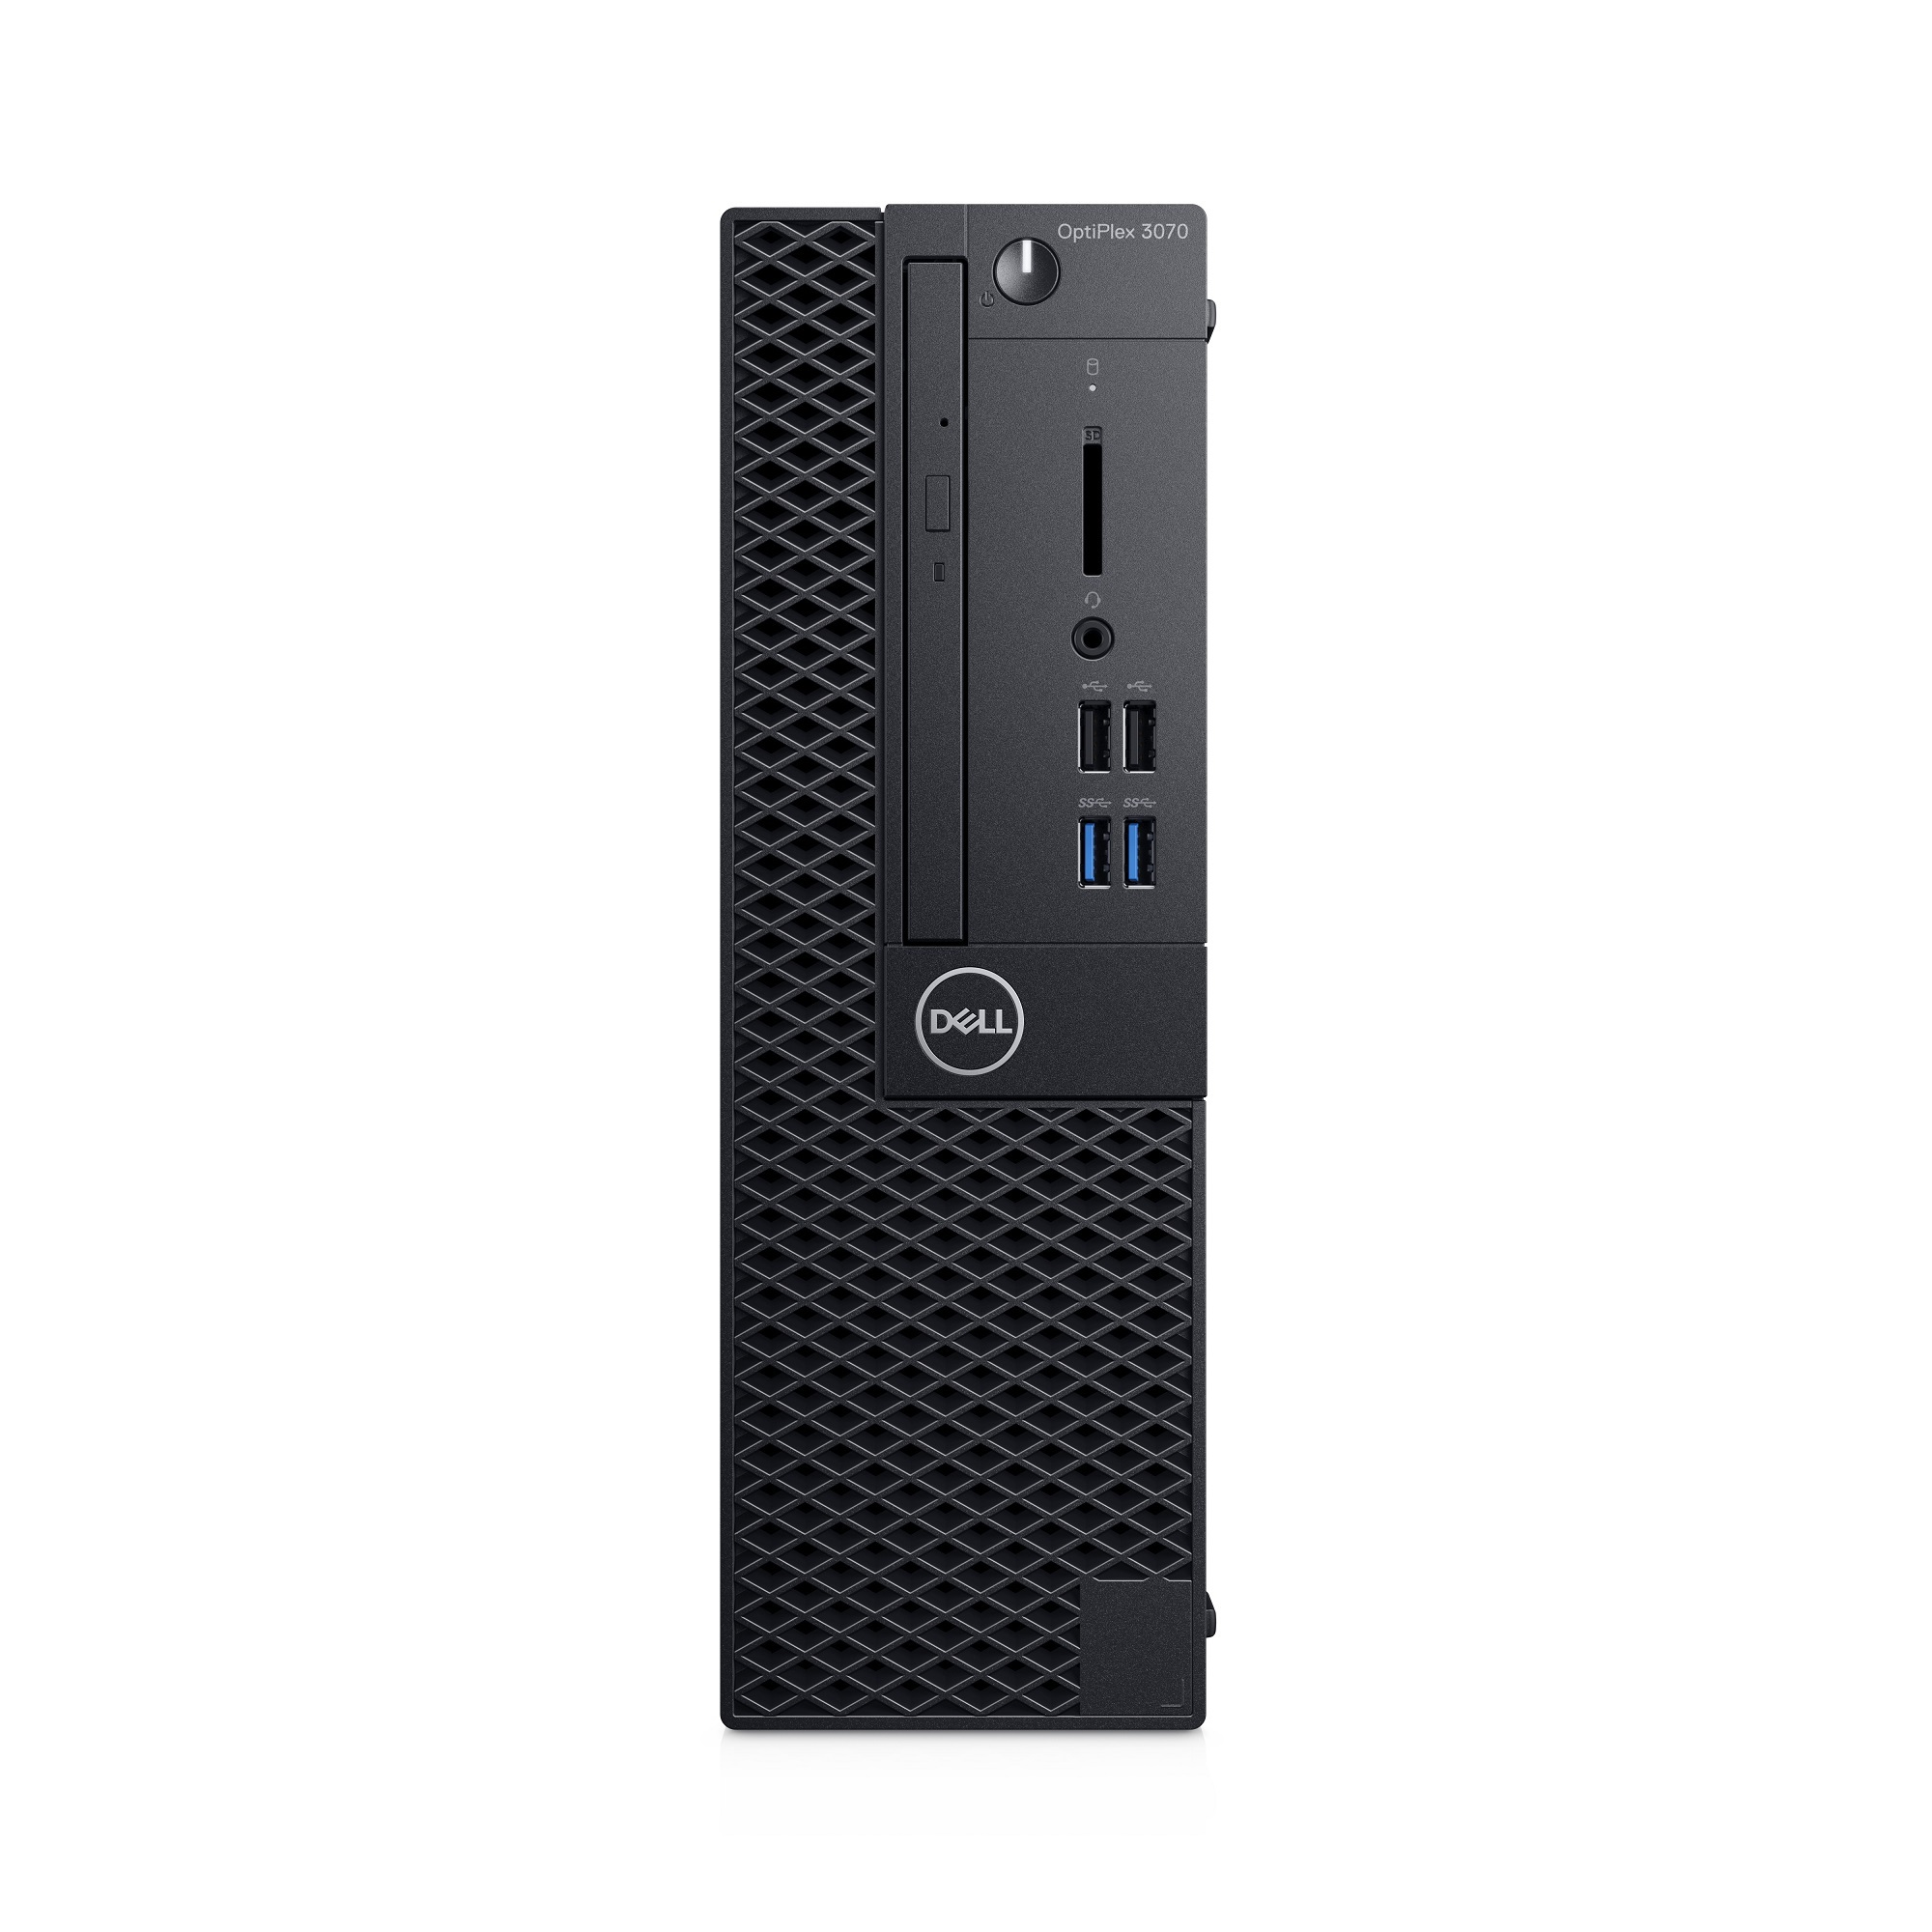 #Dell Optiplex 3070 SFF i5-8500 8GB DDR4 256GB SSD Intel UHD 630 noDVDRW KB216 & MS116 W10Pro 3Y NBD KYHD